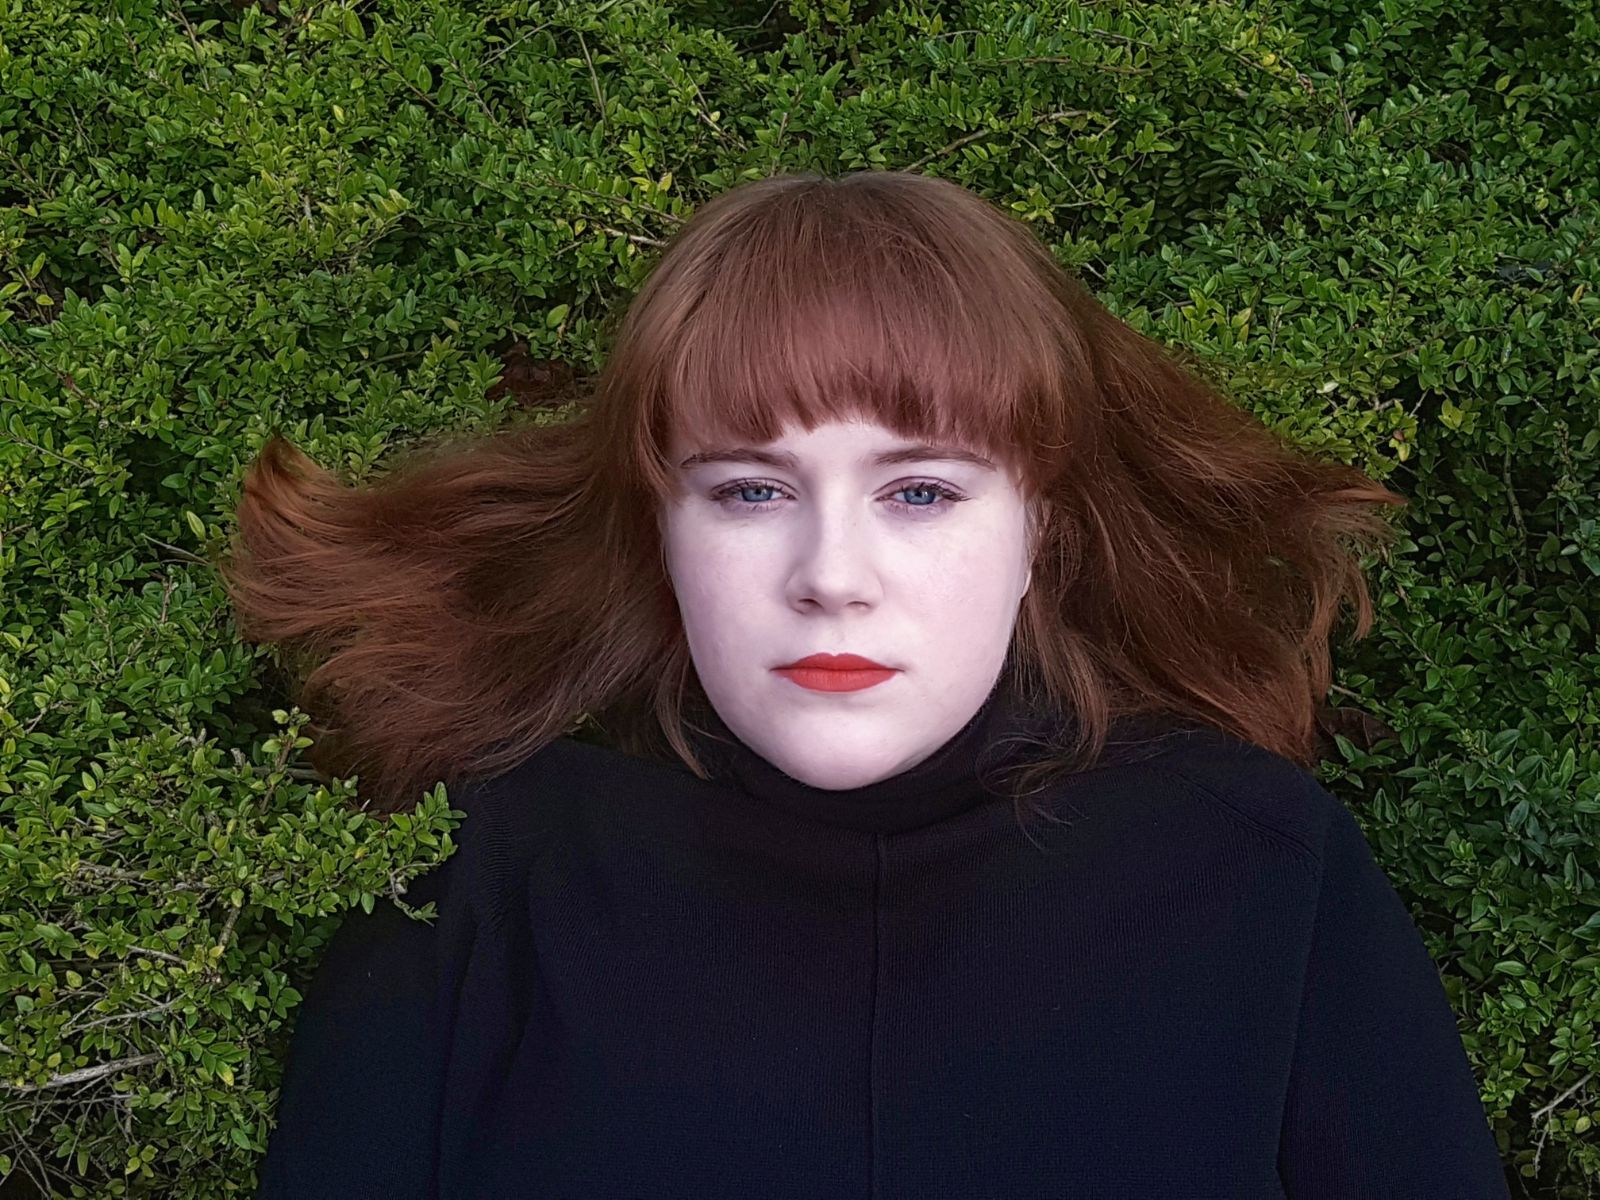 Portrait of a hella pale girl in a hedge